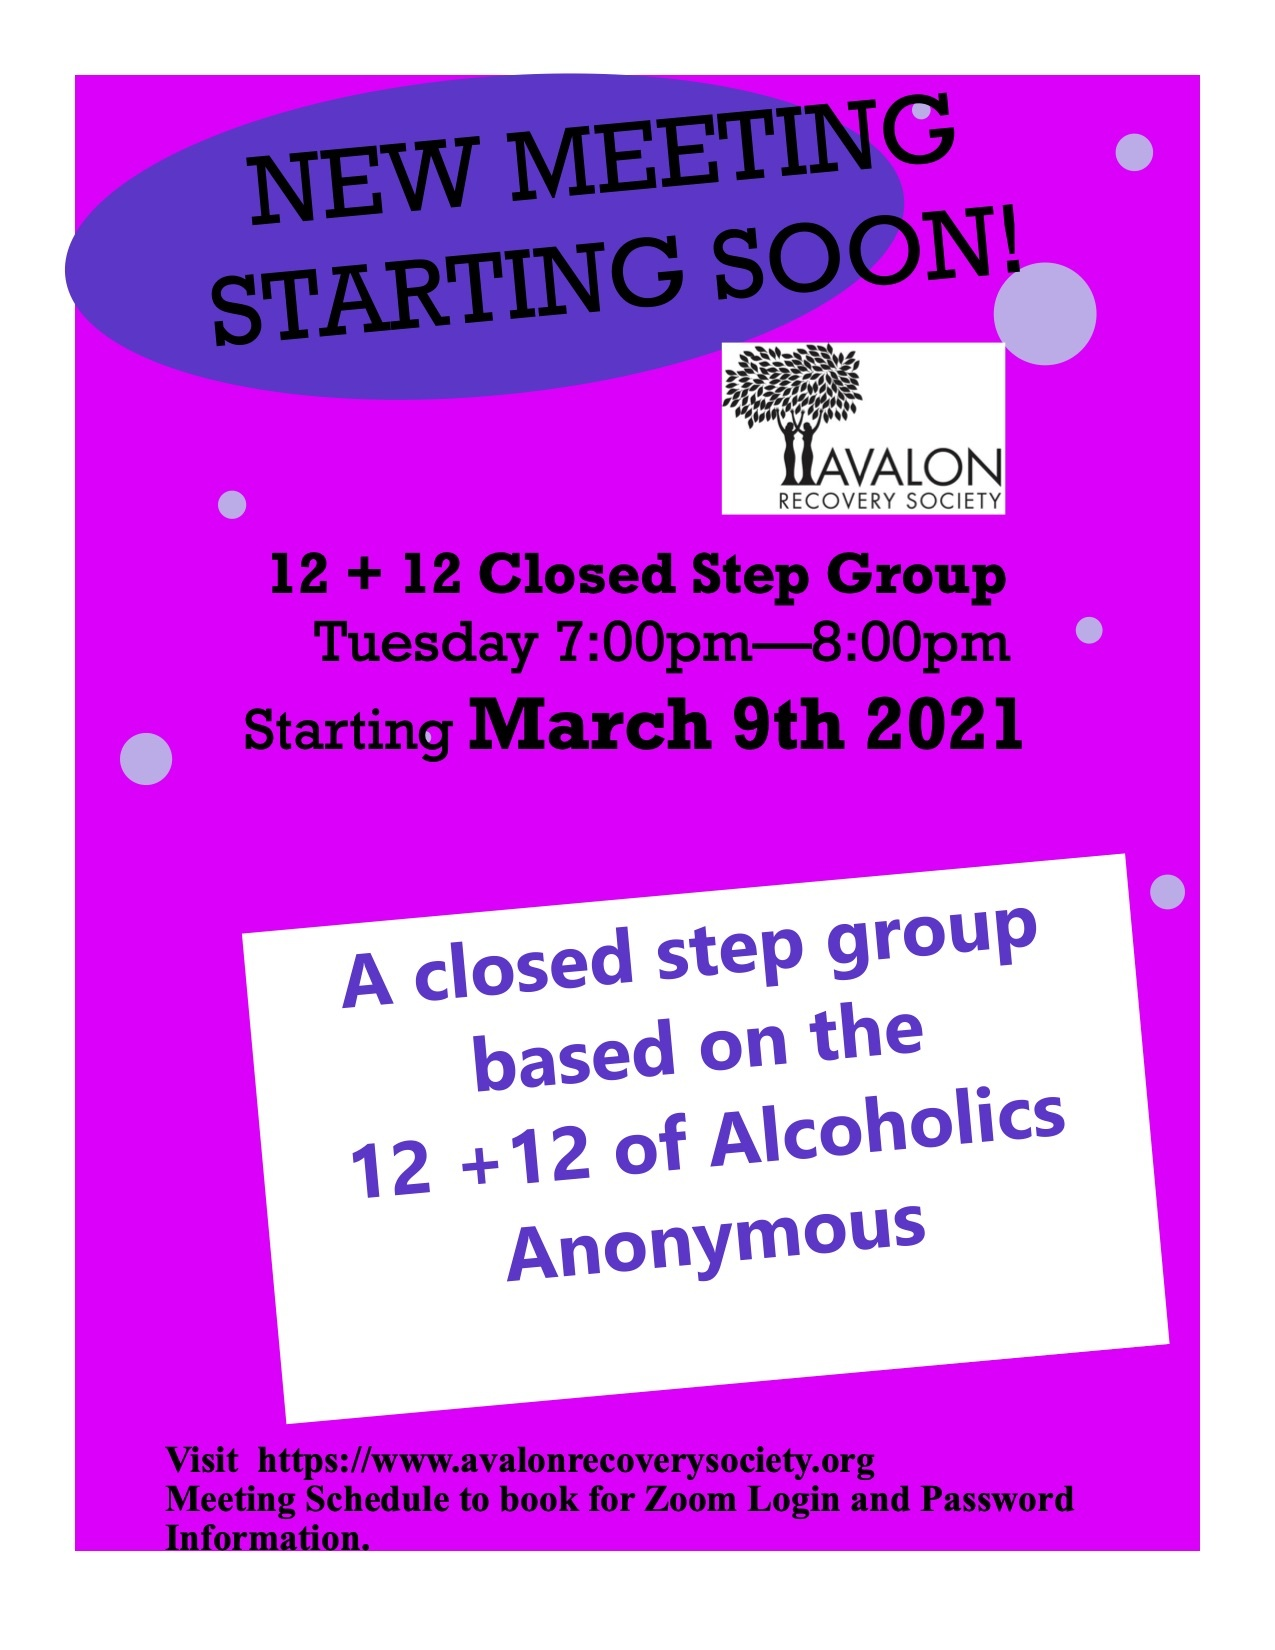 Pink Poster with a new meeting starting soon - Alcoholics Anonymous Meeting